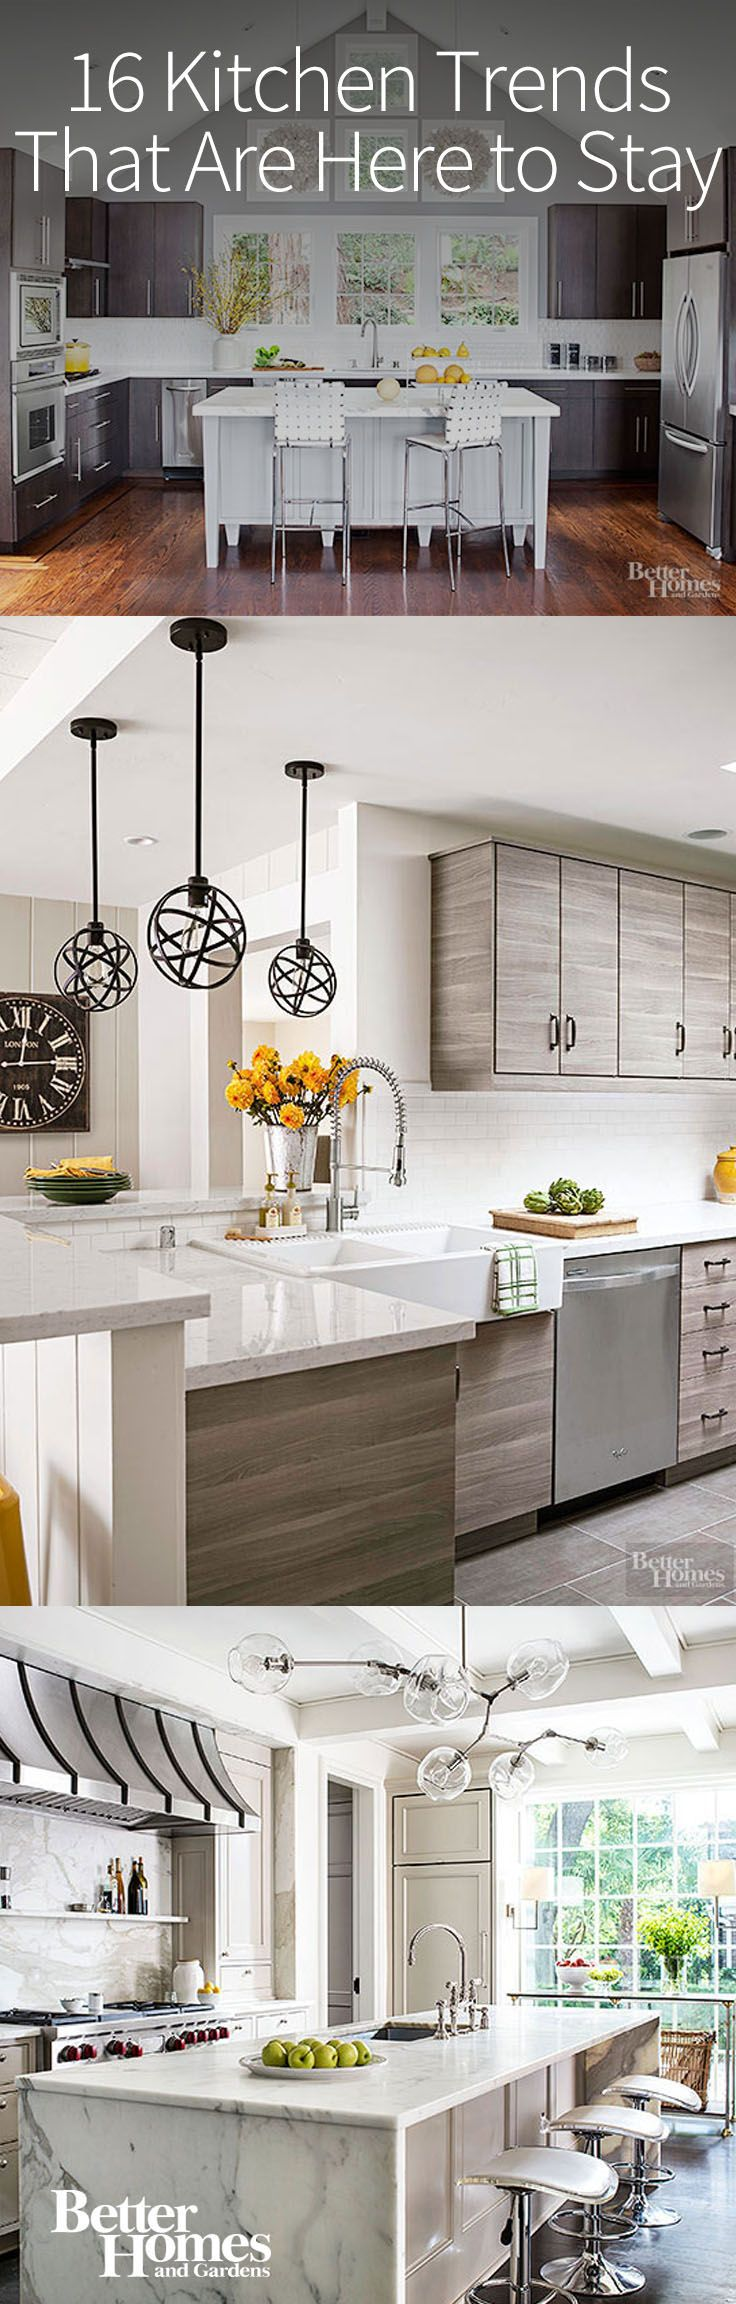 23 Timeless Kitchen Trends That Are Here To Stay Kitchen Trends Latest Kitchen Trends Home Decor Kitchen